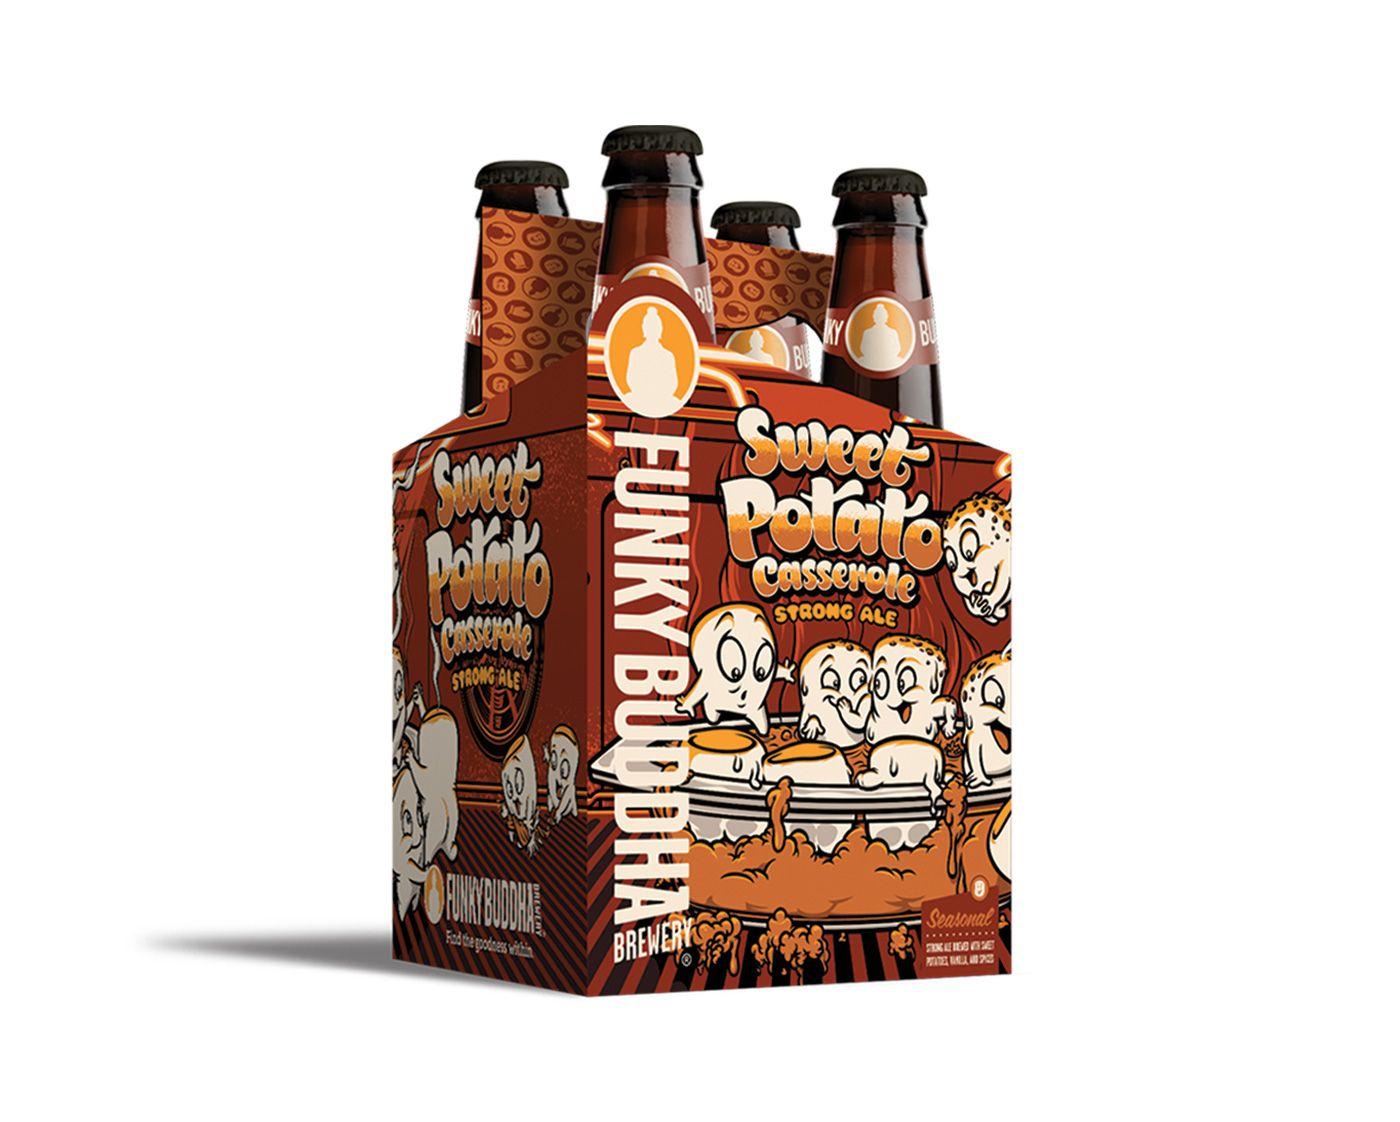 funky buddha brewery product illustration and package design by thefunky buddha brewery product illustration and package design by the brandit